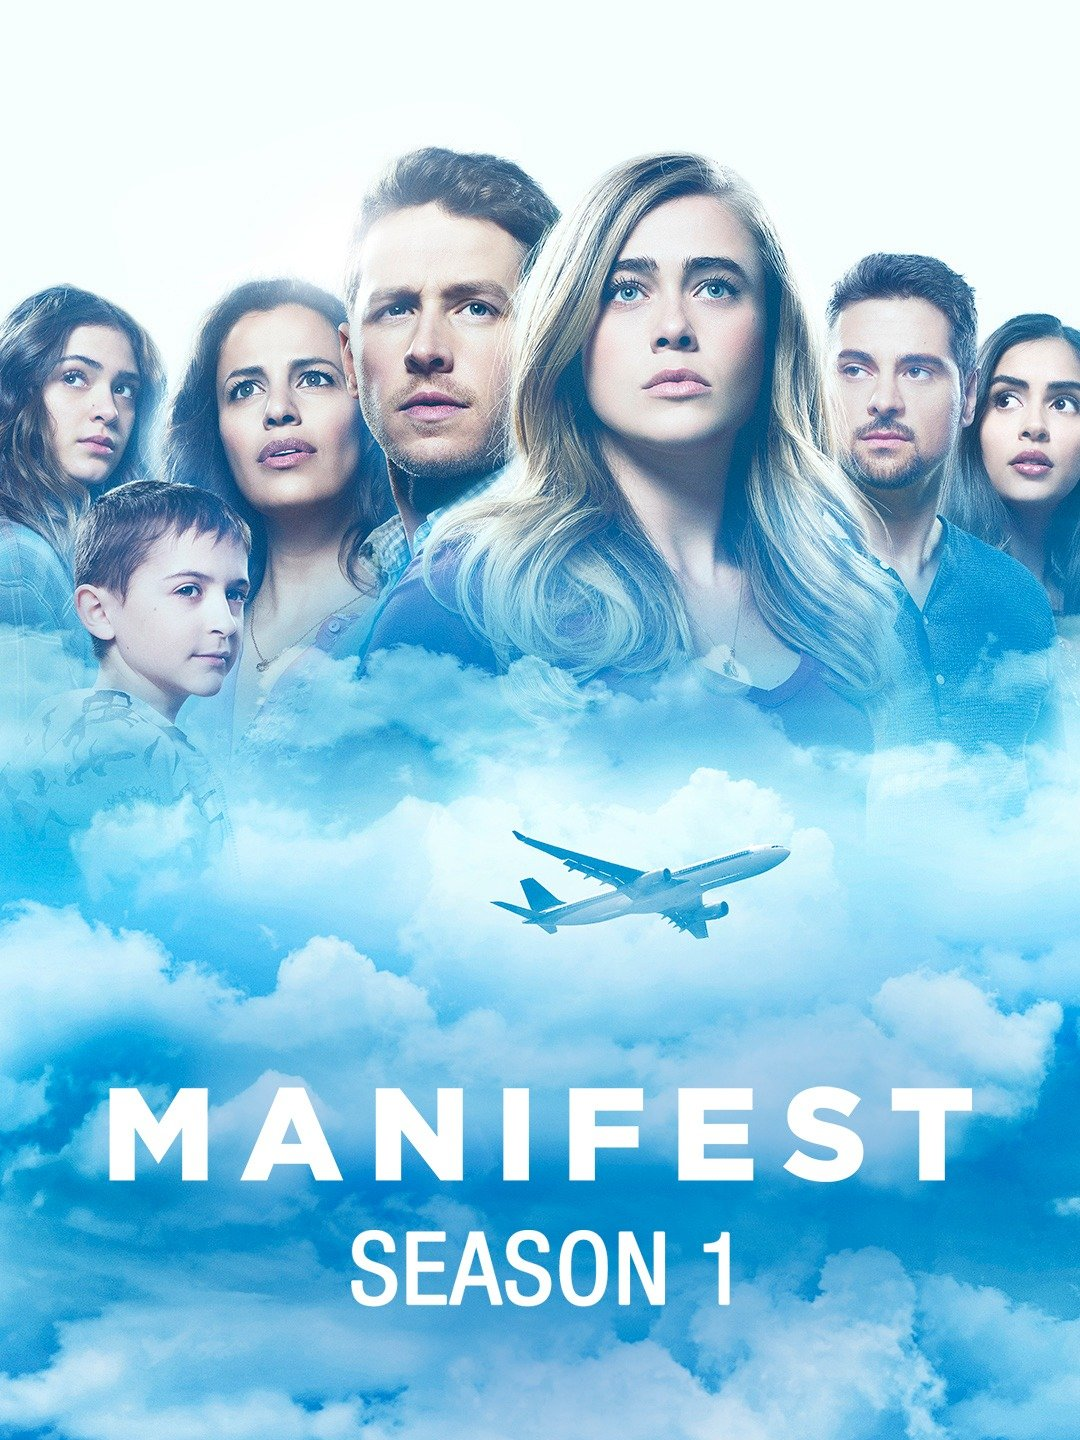 Manifest Season 4 Release Date On Netflix How long will it take to stream?